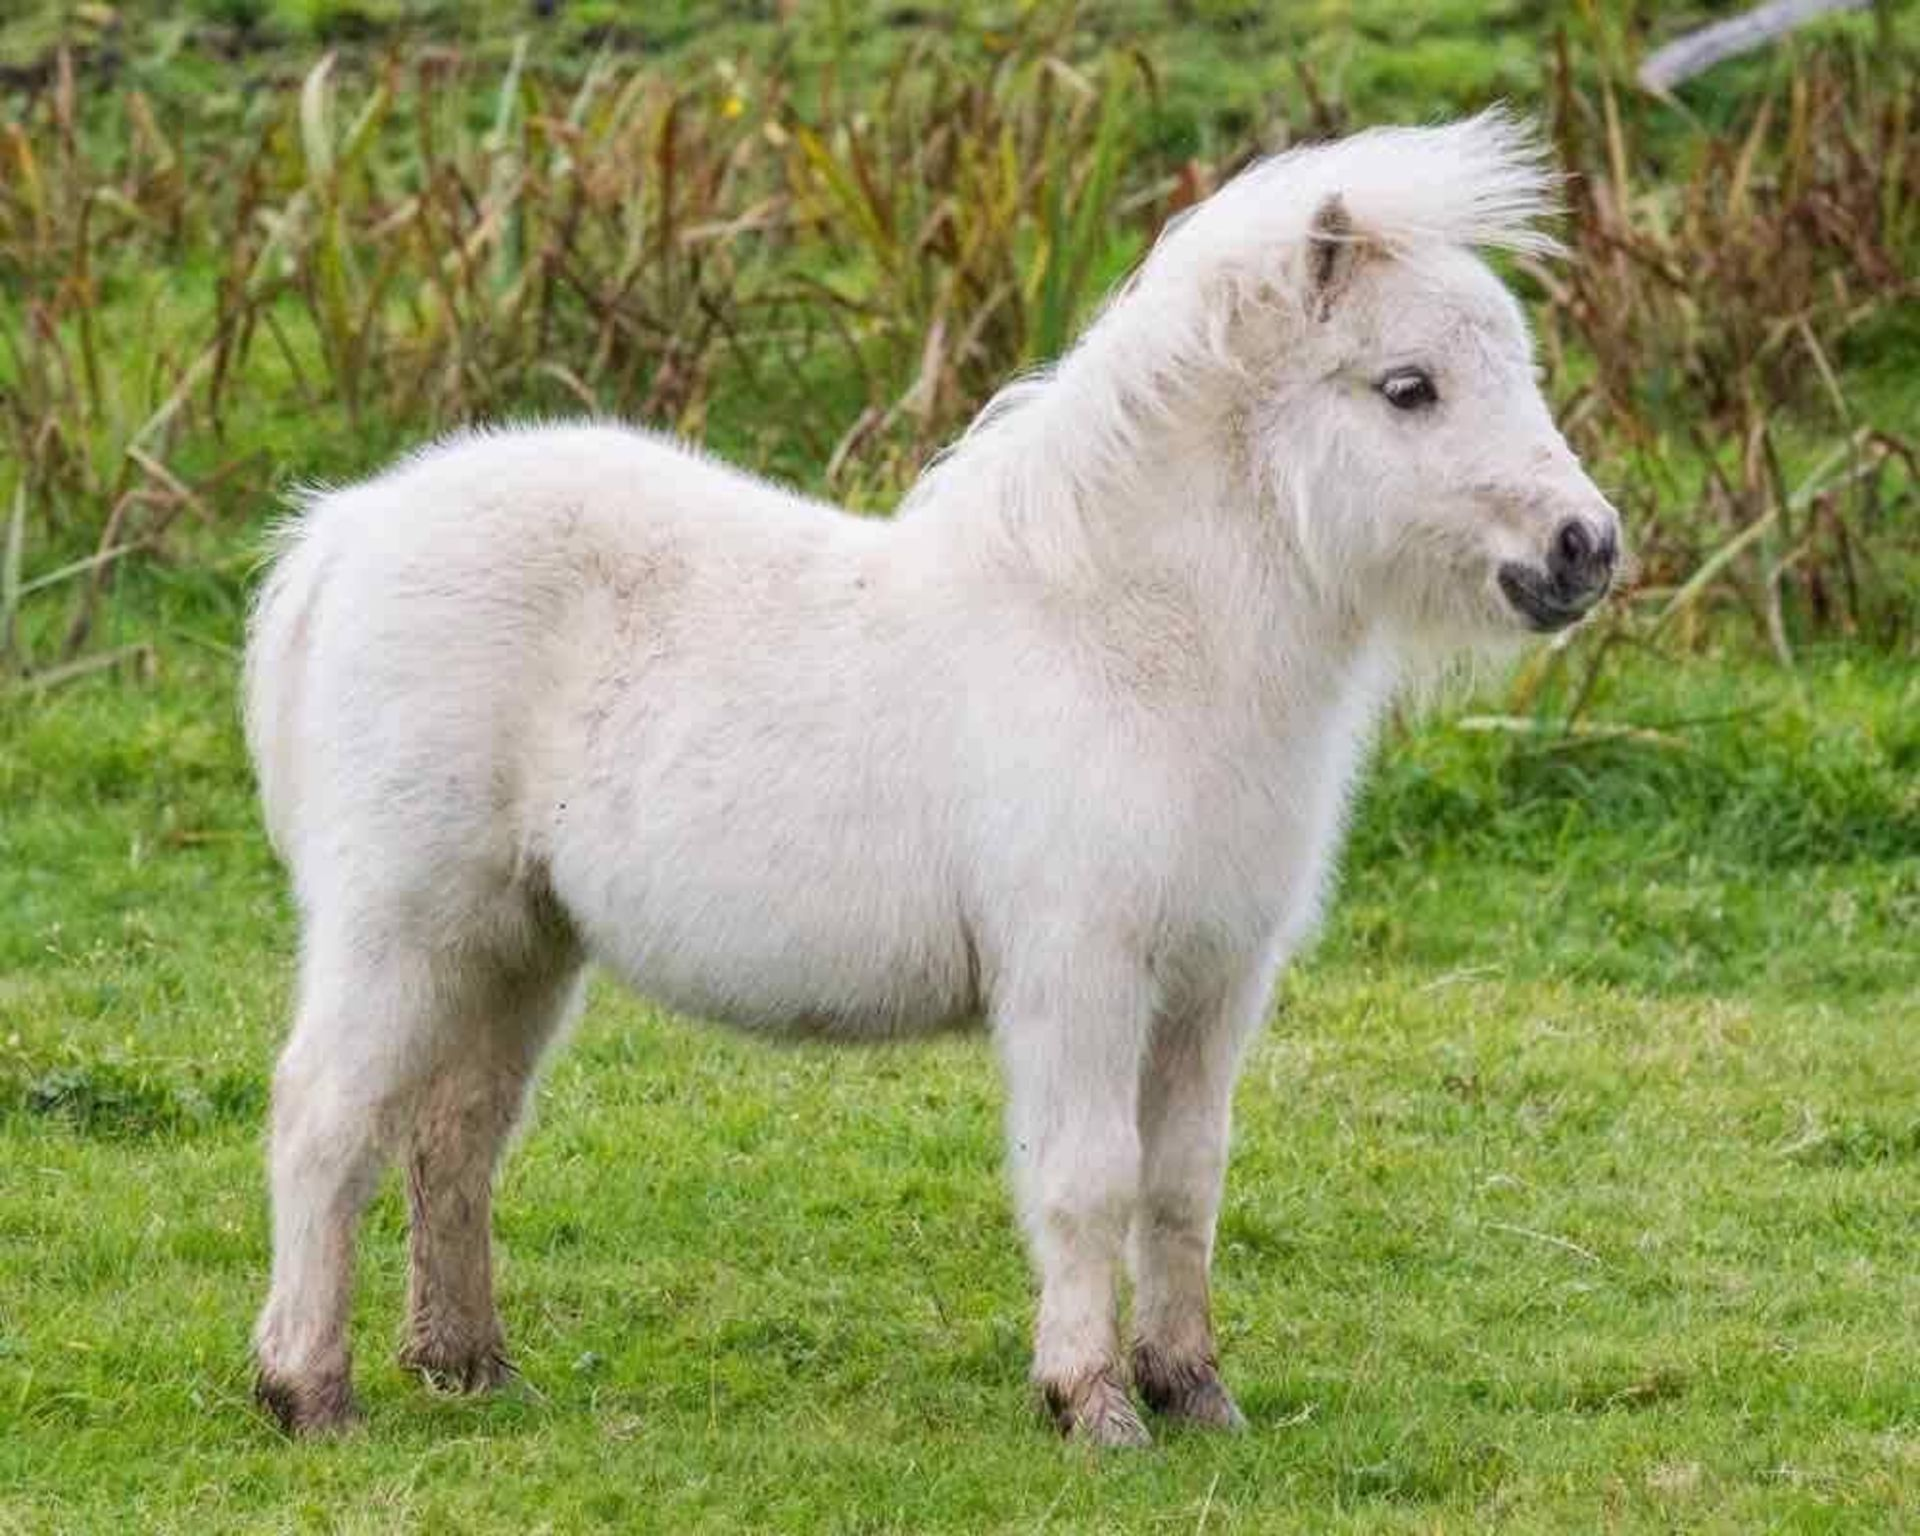 Palomino - Miniature - Filly Foal, - DOB: 11th May 2017 - Image 5 of 7